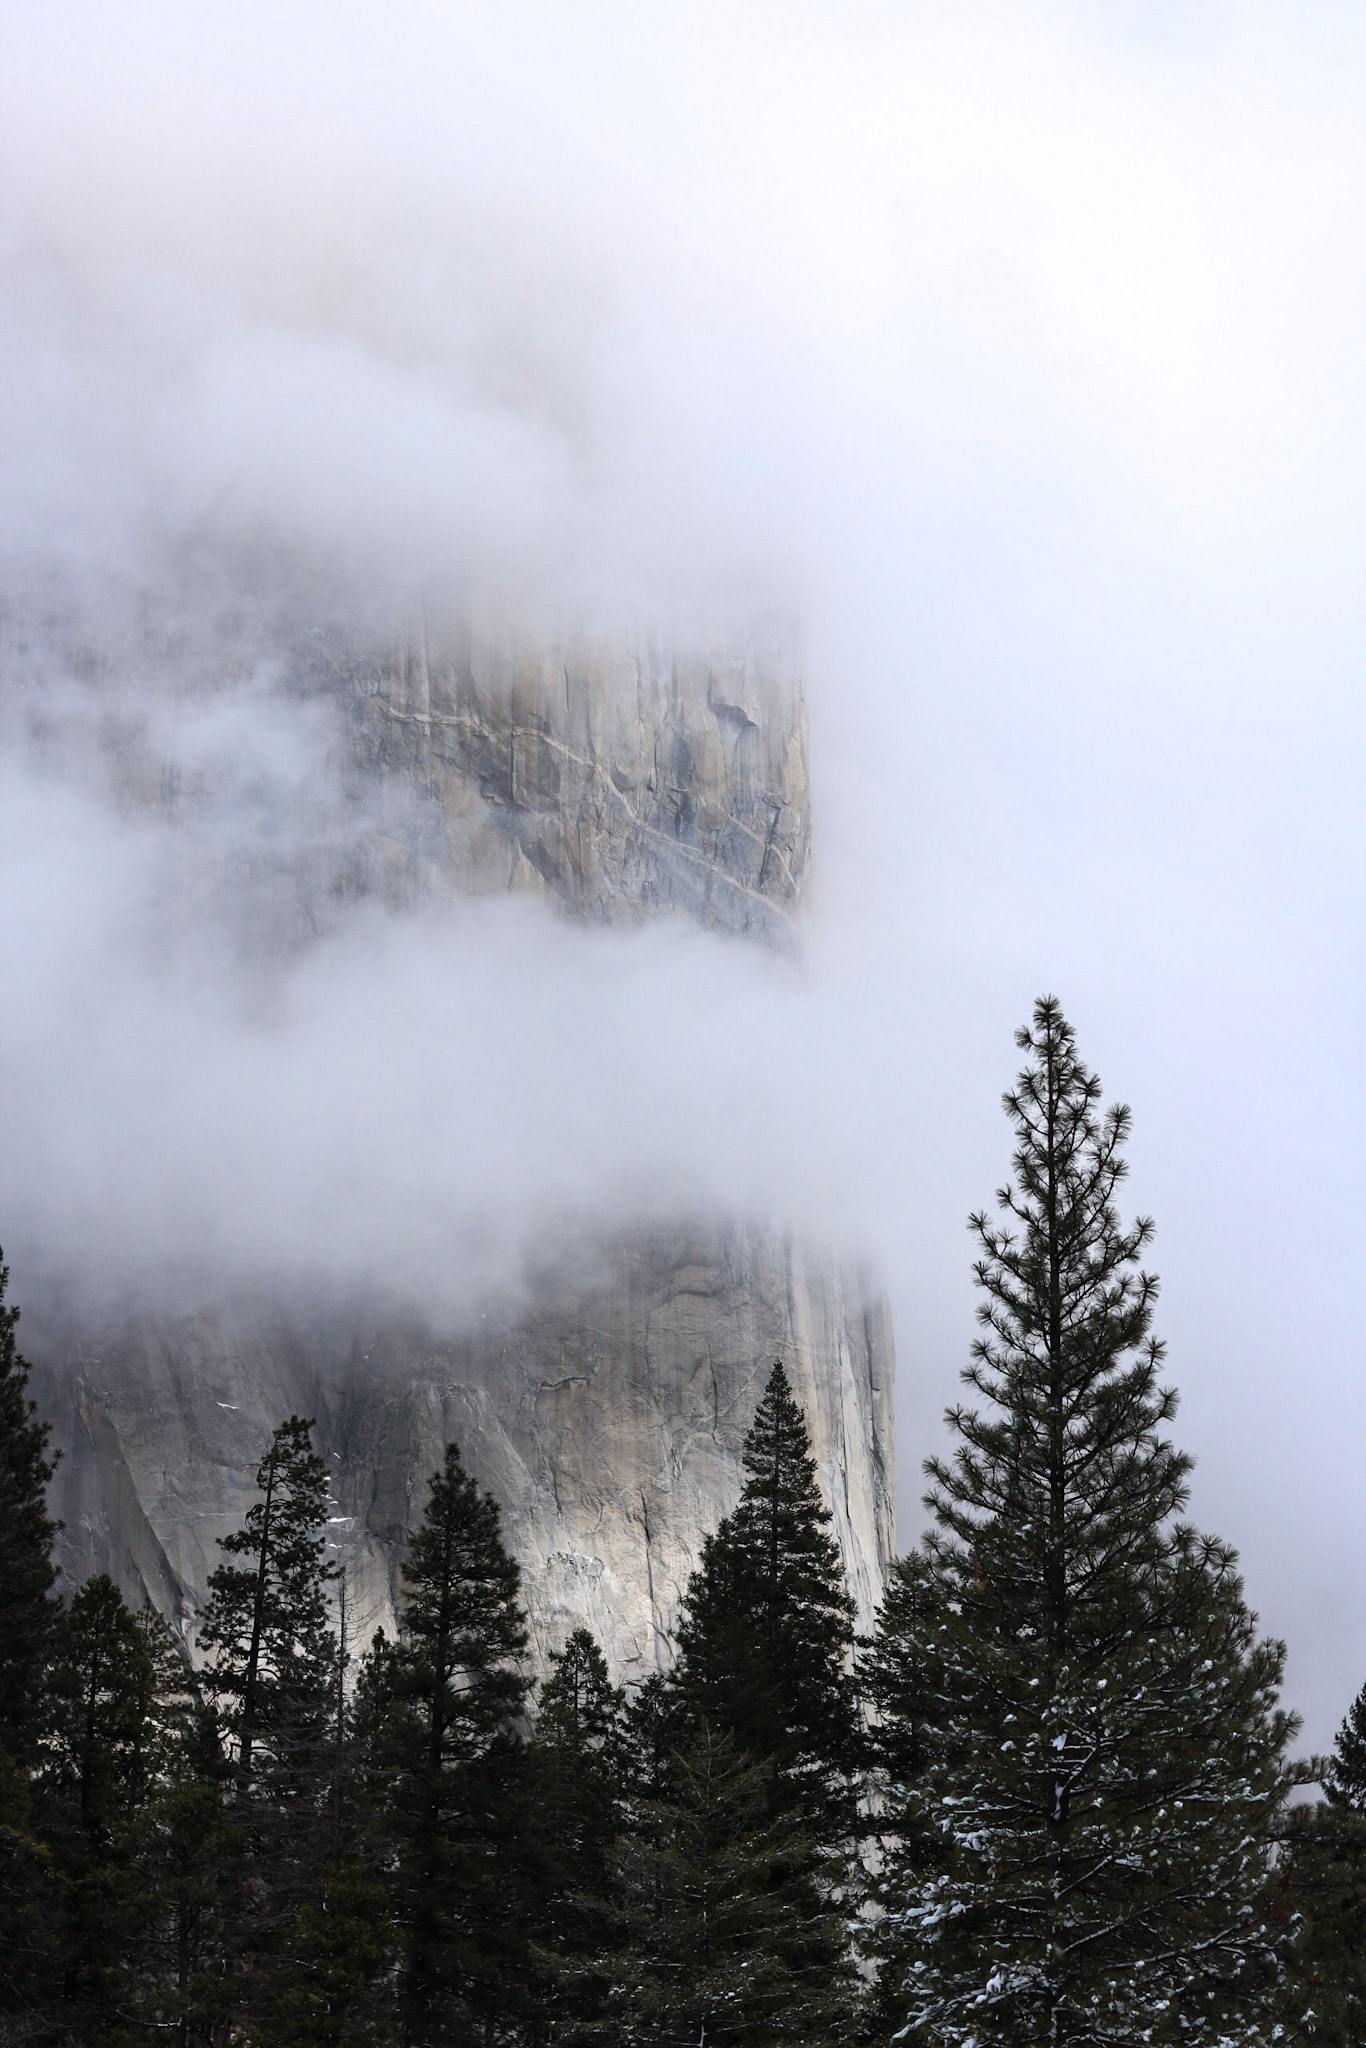 A steep cliff shrouded in fog in Yosemite